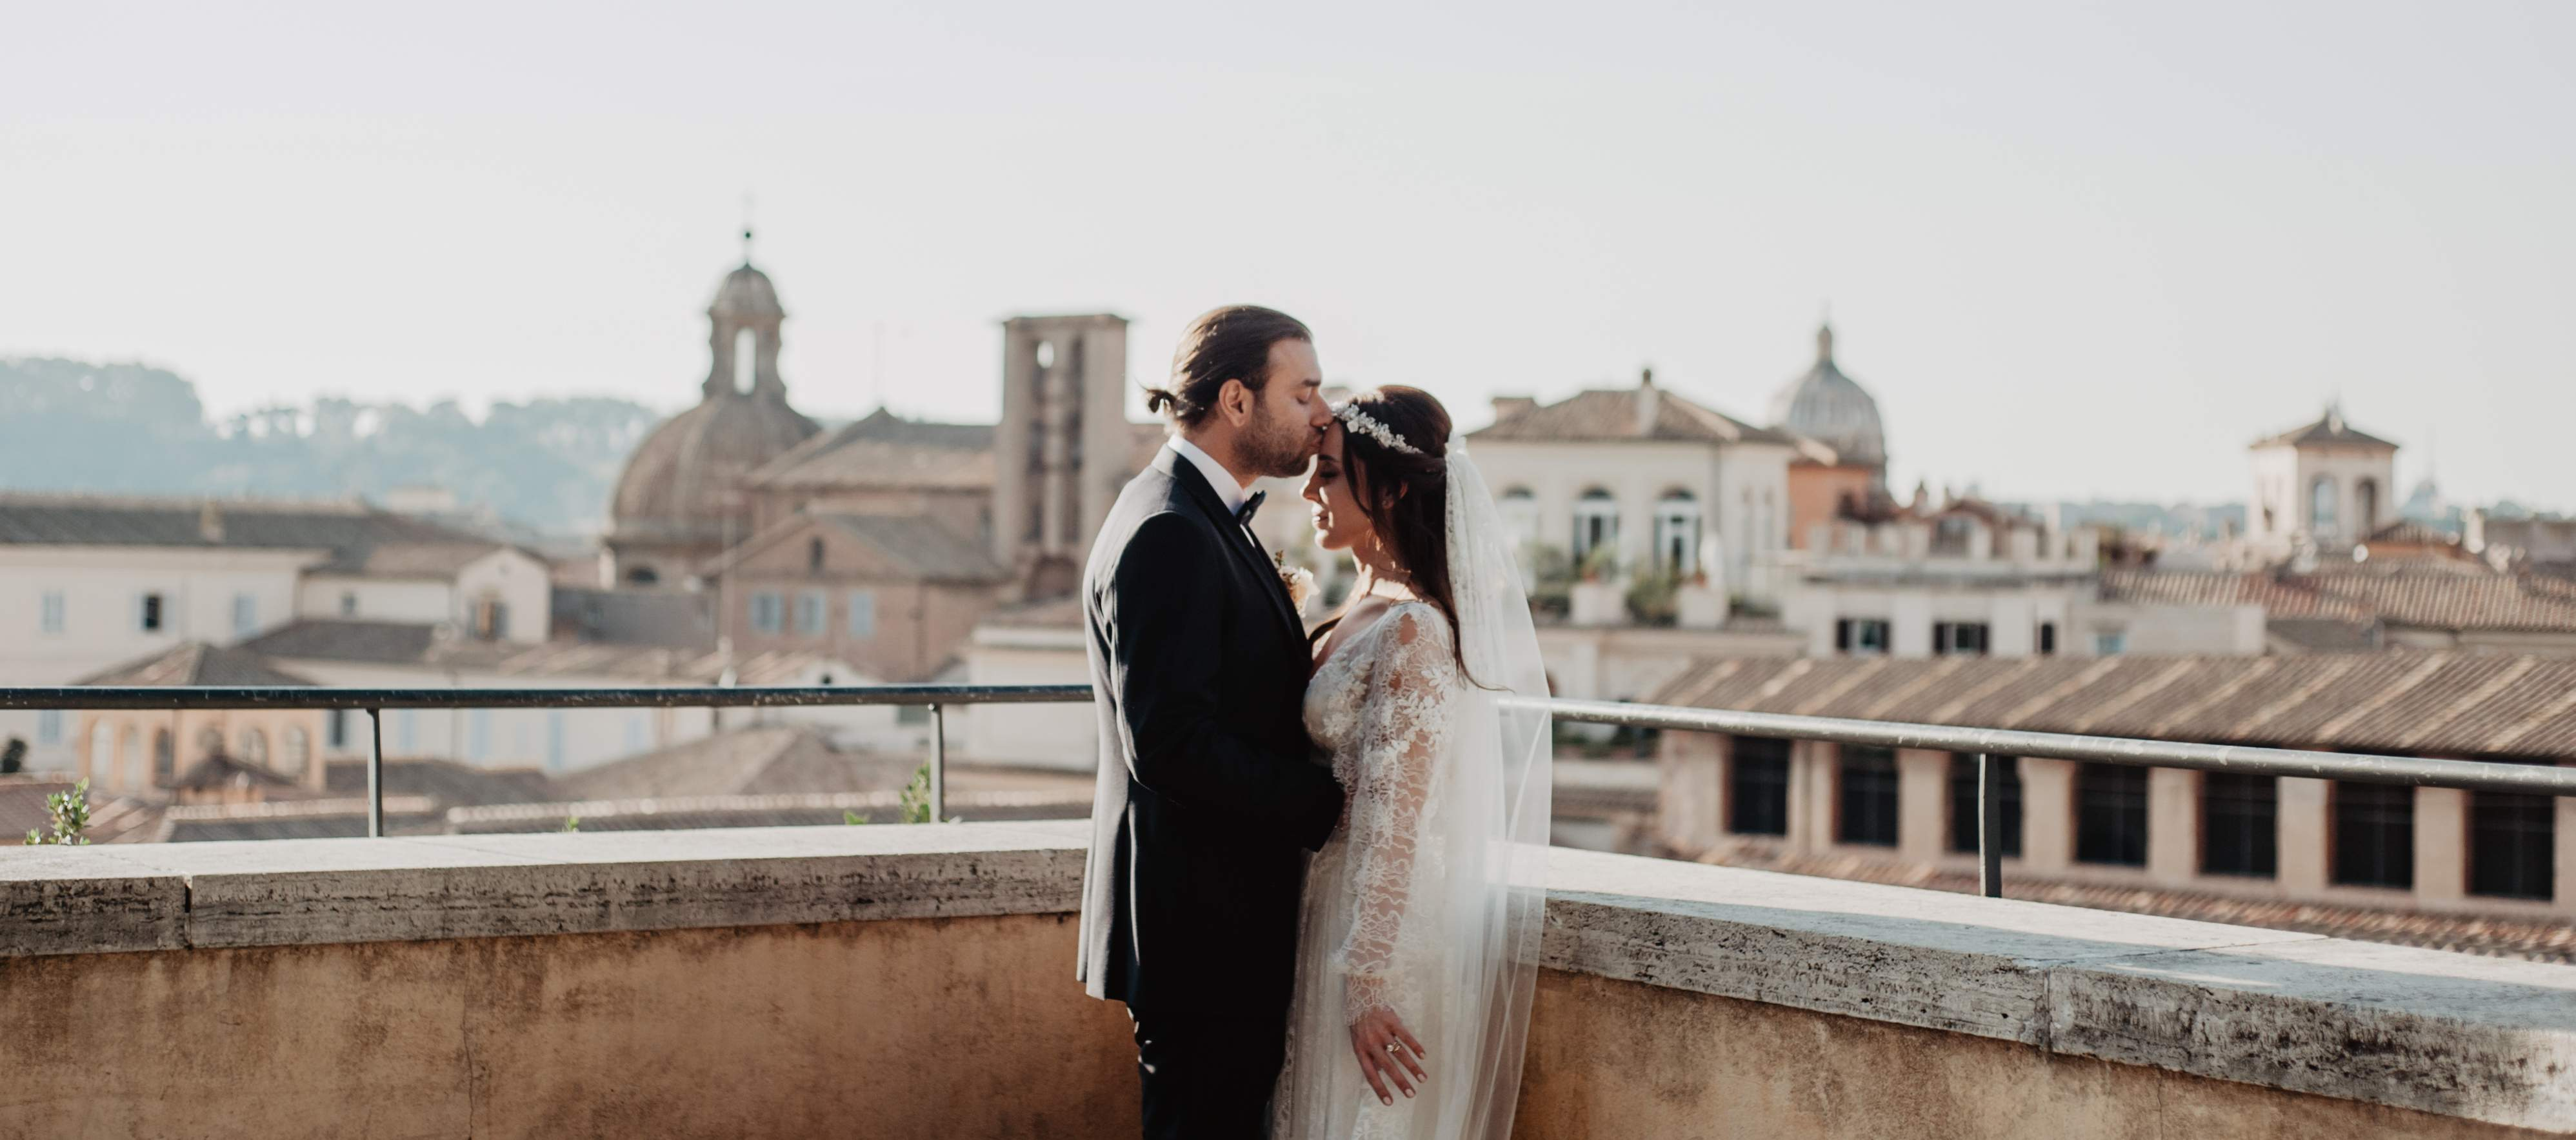 Testimonials Weddings in Italy